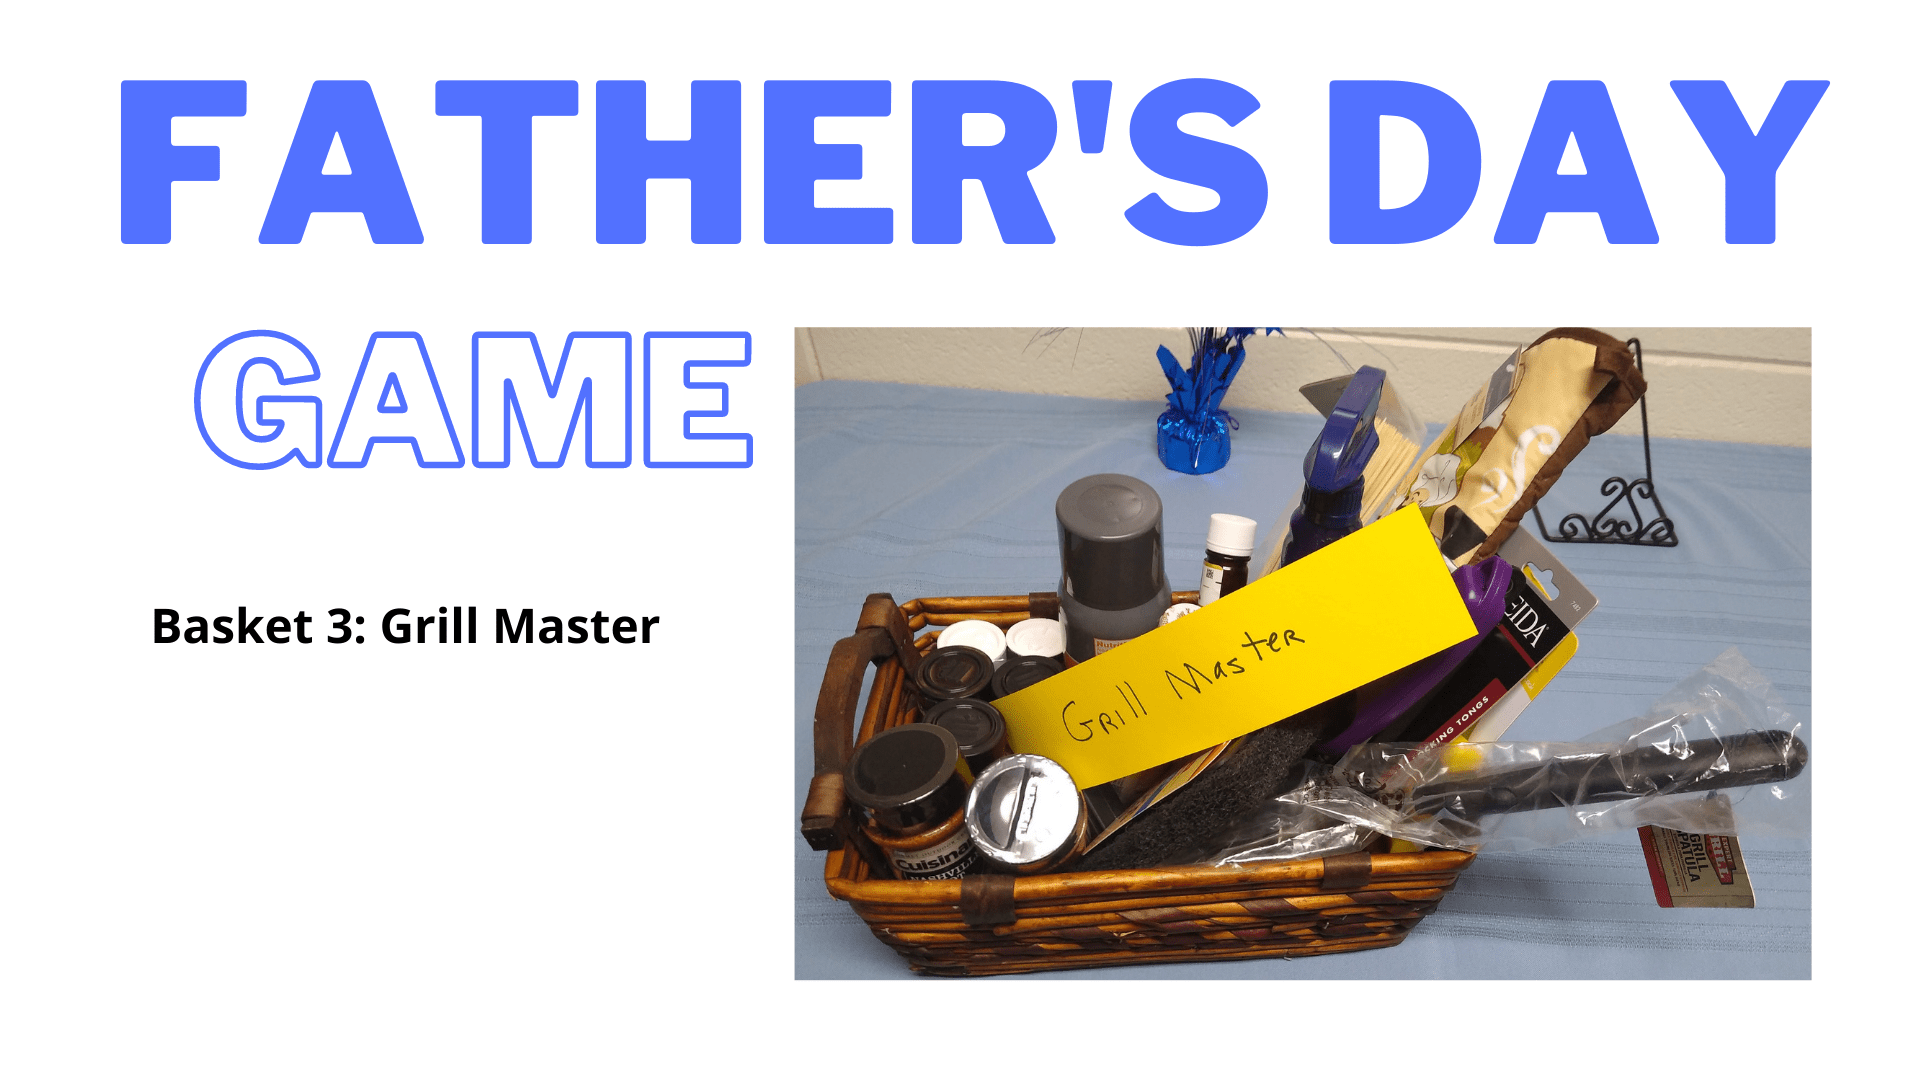 Father's Day Game: Grill Master